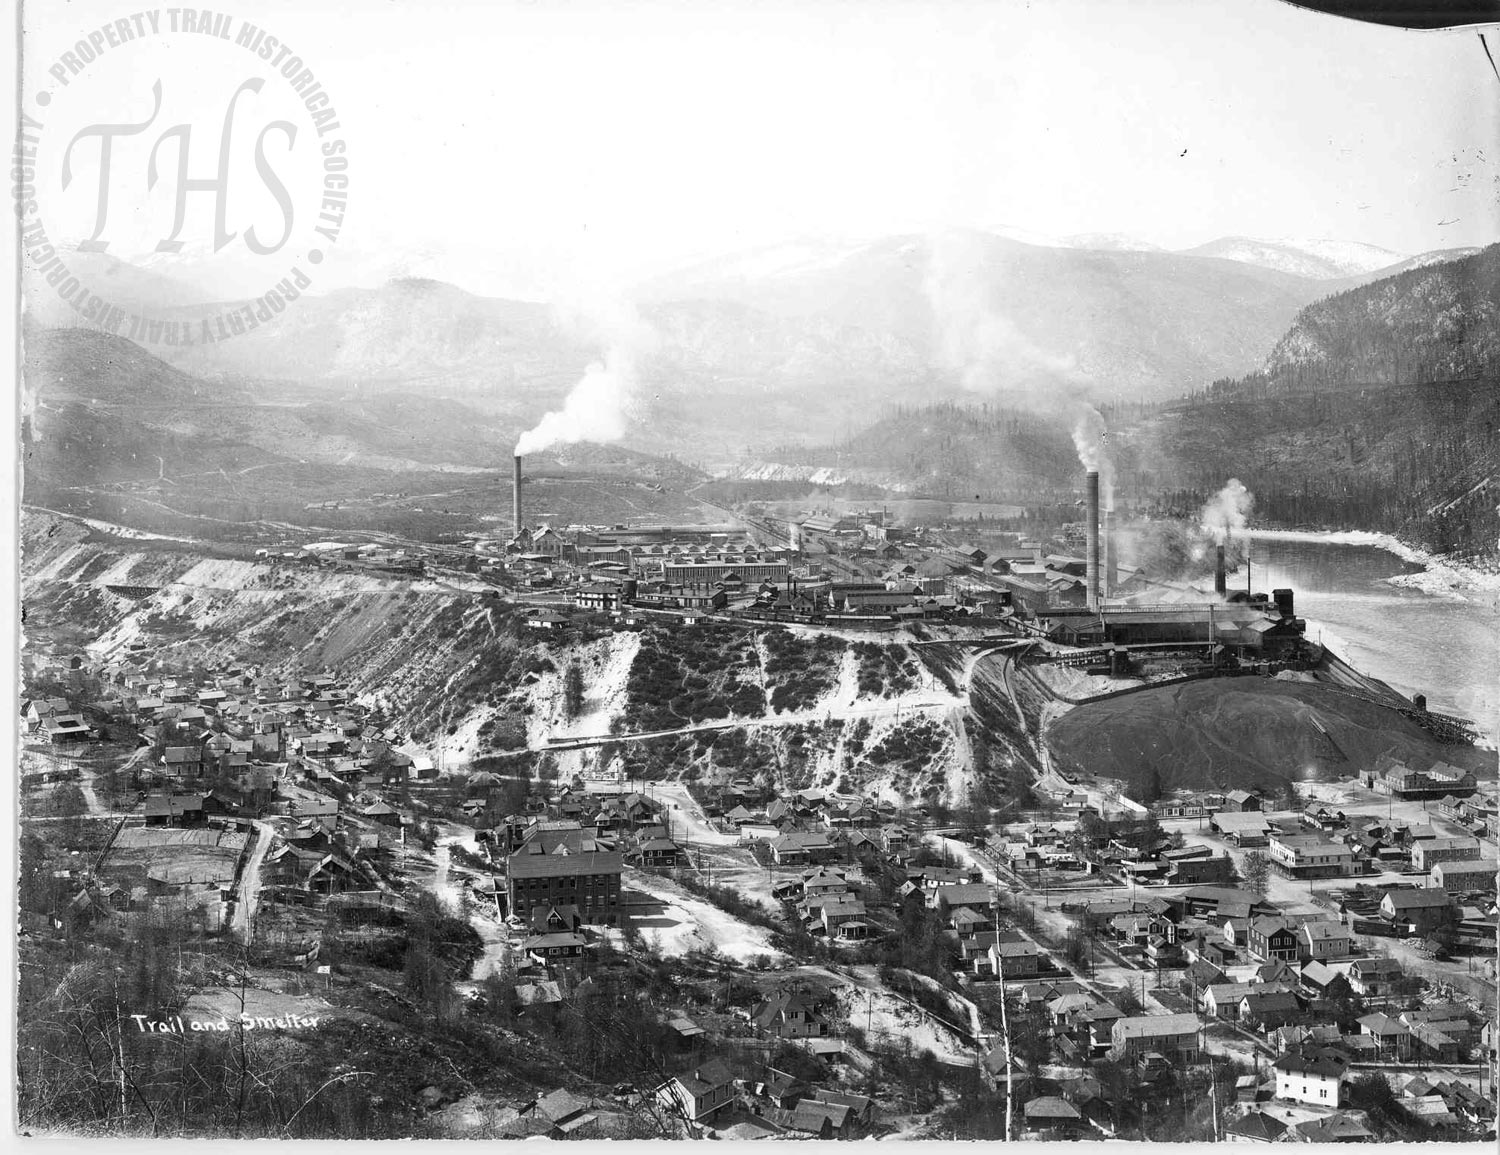 Aerial view of Trail and Smelter (Hughes) - 1925